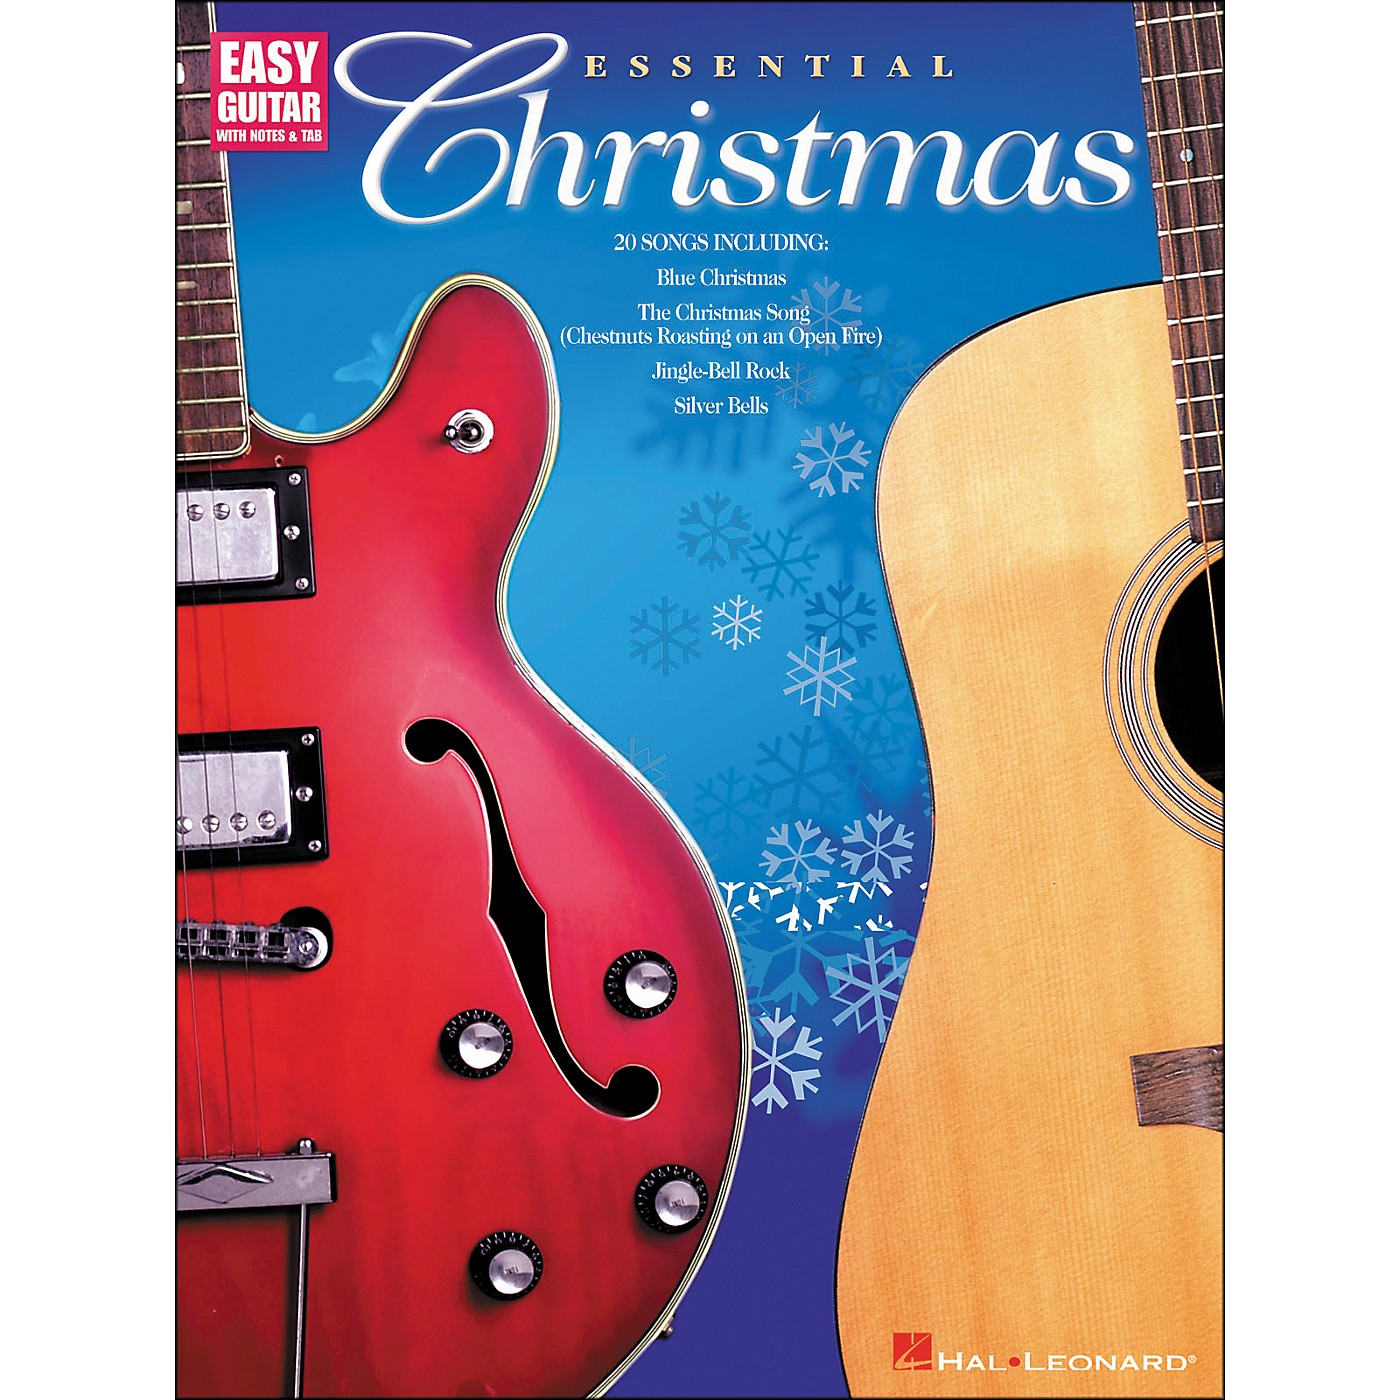 Hal Leonard Essential Christmas Easy Guitar with Notes & Tab thumbnail